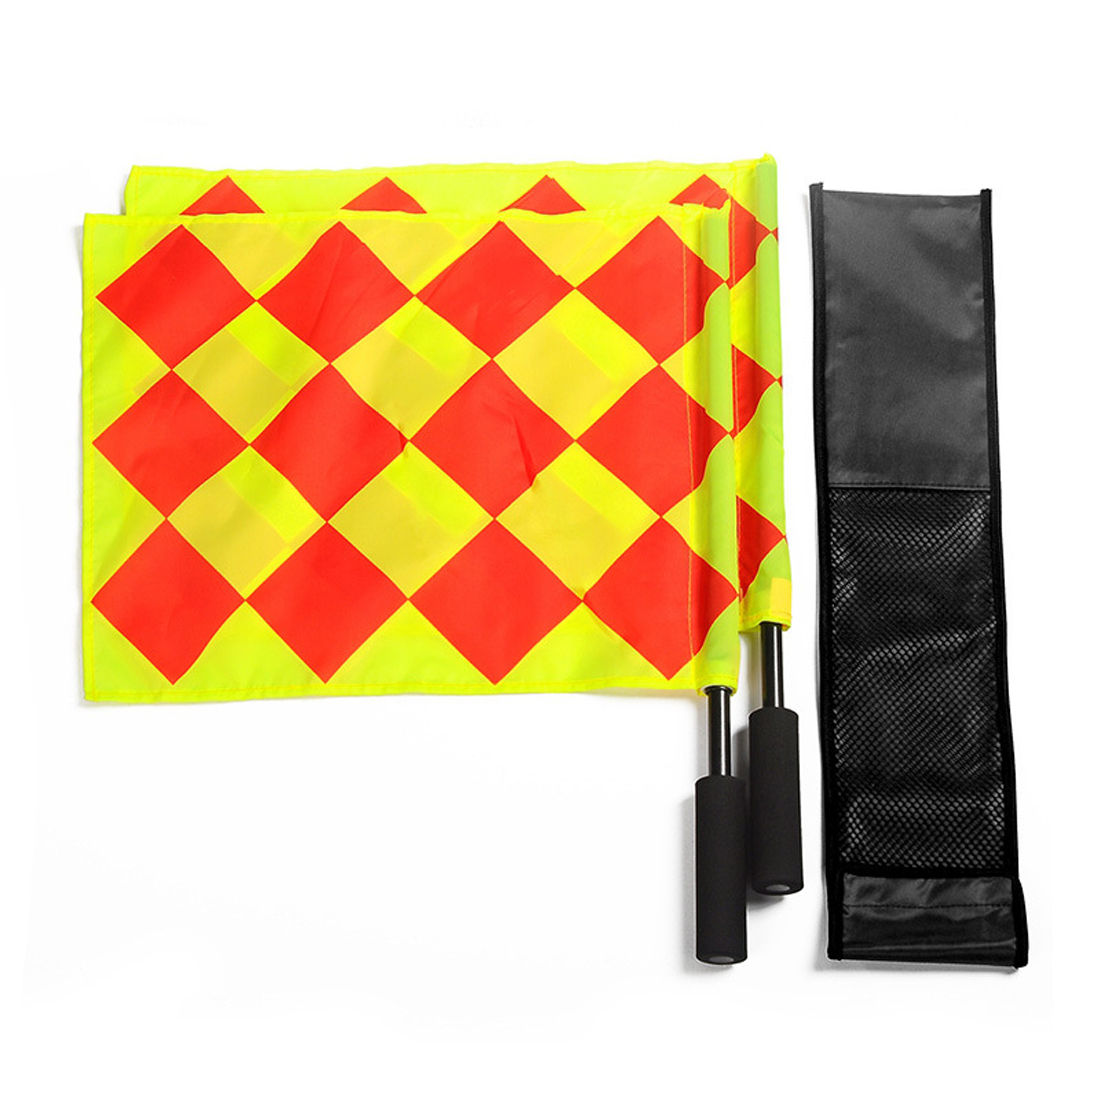 2Pcs Soccer Referee Flag Football Judge Sideline Fair Play Use Sports Match Football Linesman Flags Referee Equipment